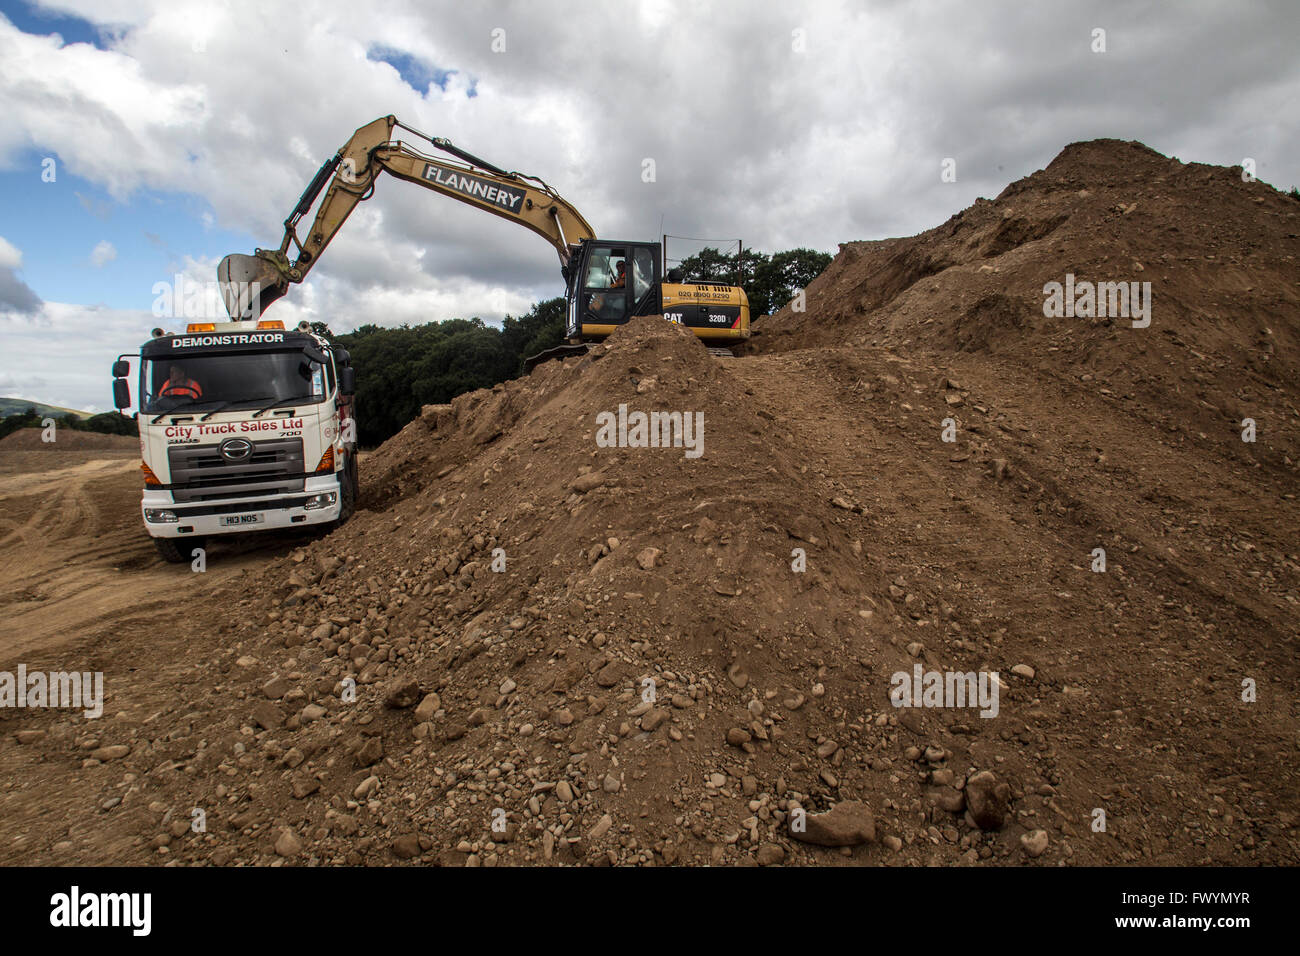 Diggers working in Quarry for Borders railway Construction, Scotland - Stock Image